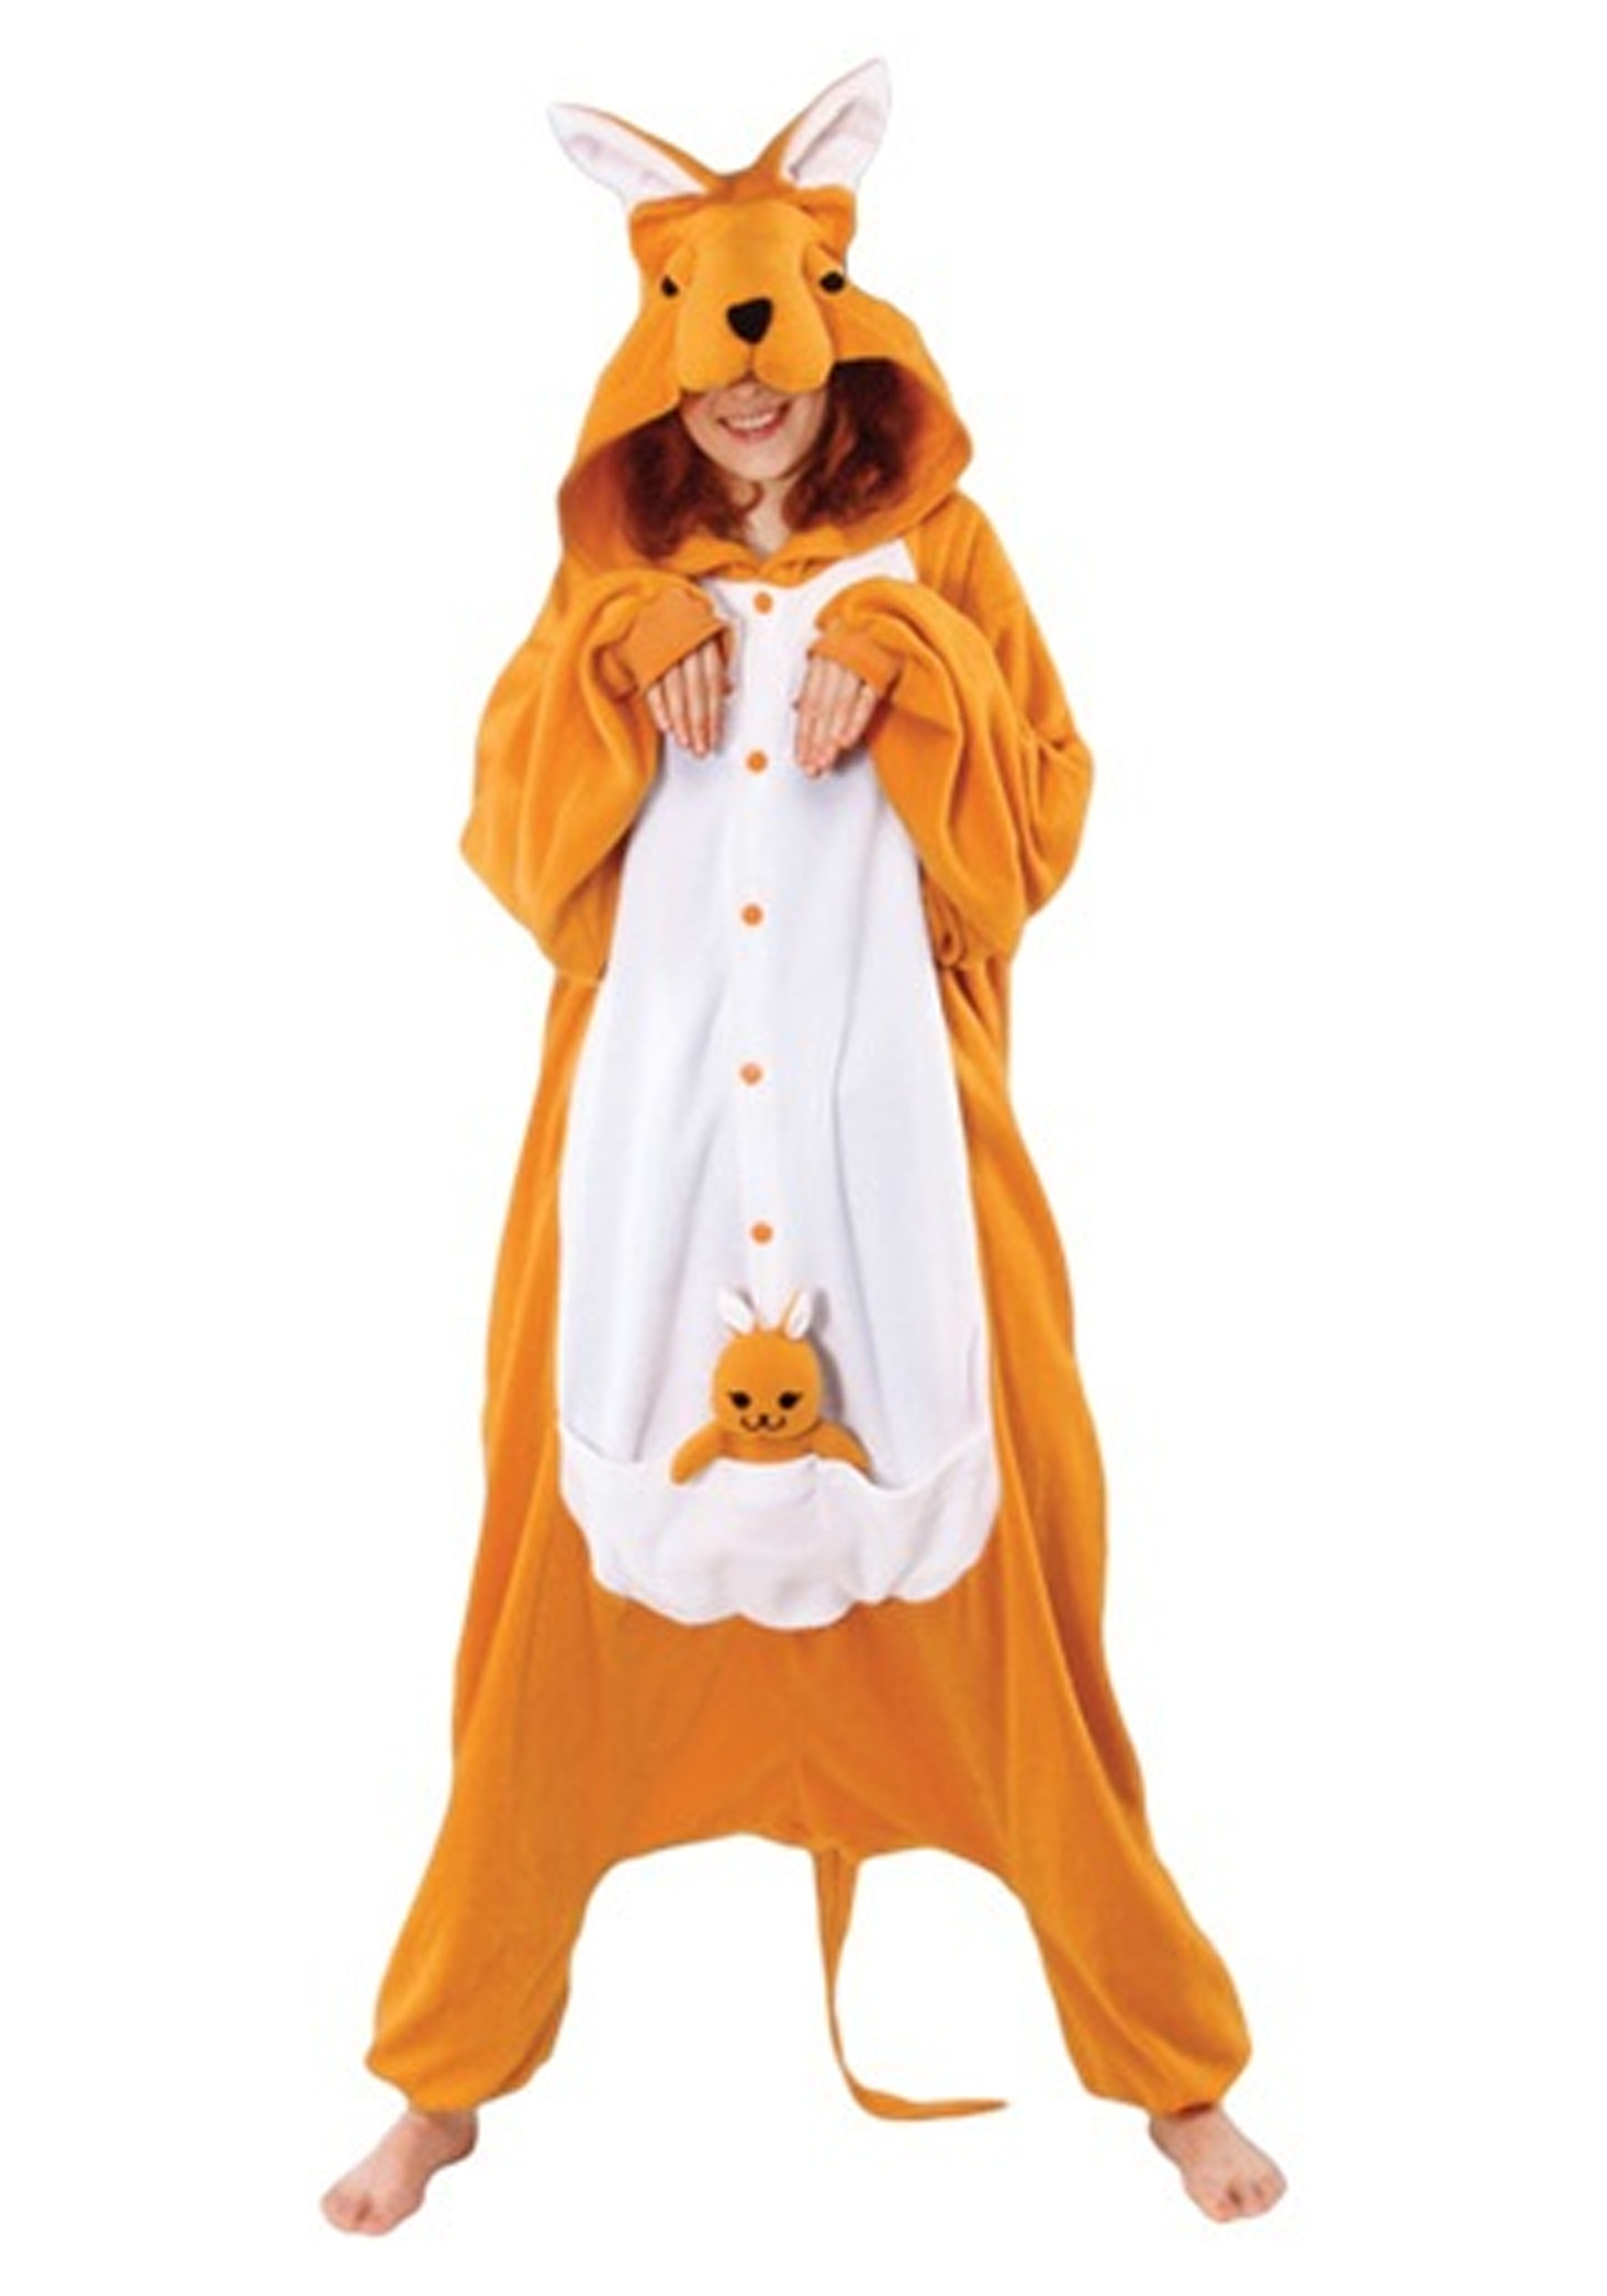 sc 1 st  Halloween Costumes & Kangaroo Pajama Costume - Halloween Costume Ideas 2016